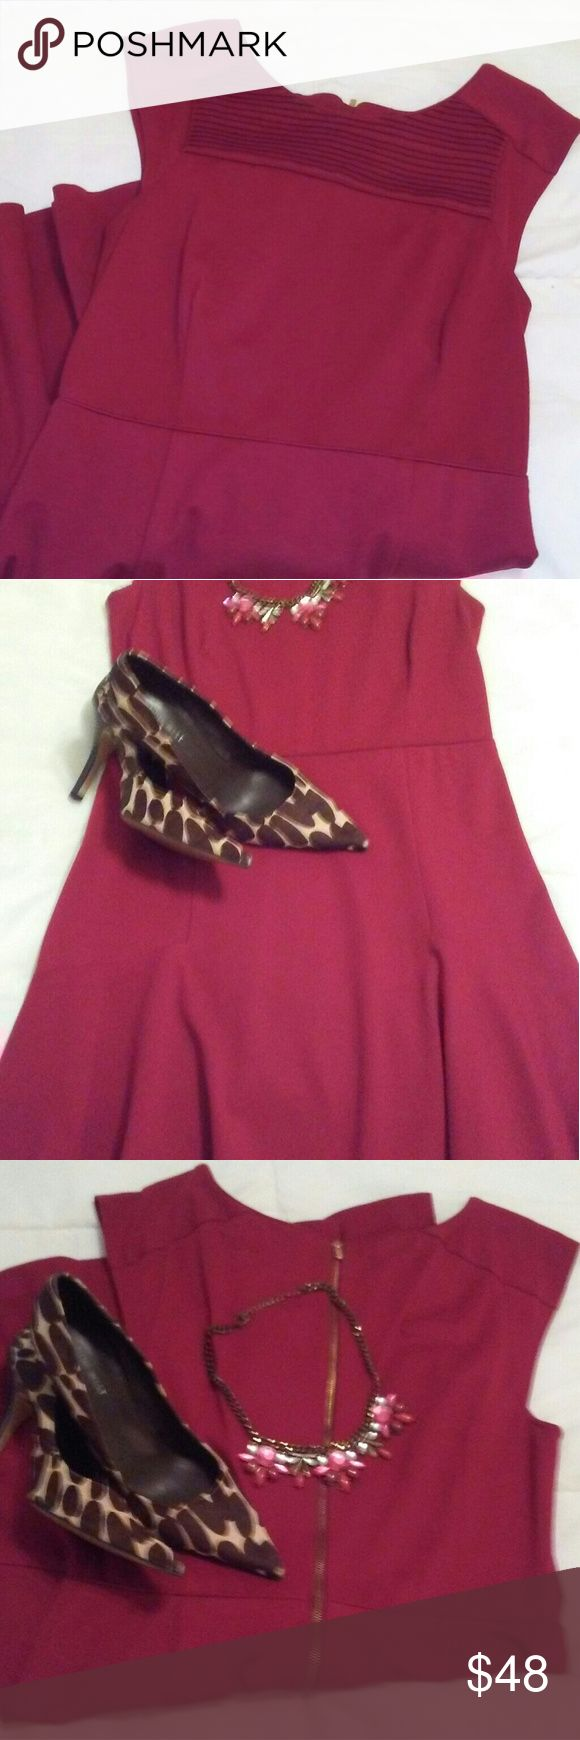 Accessorize a red dress yt